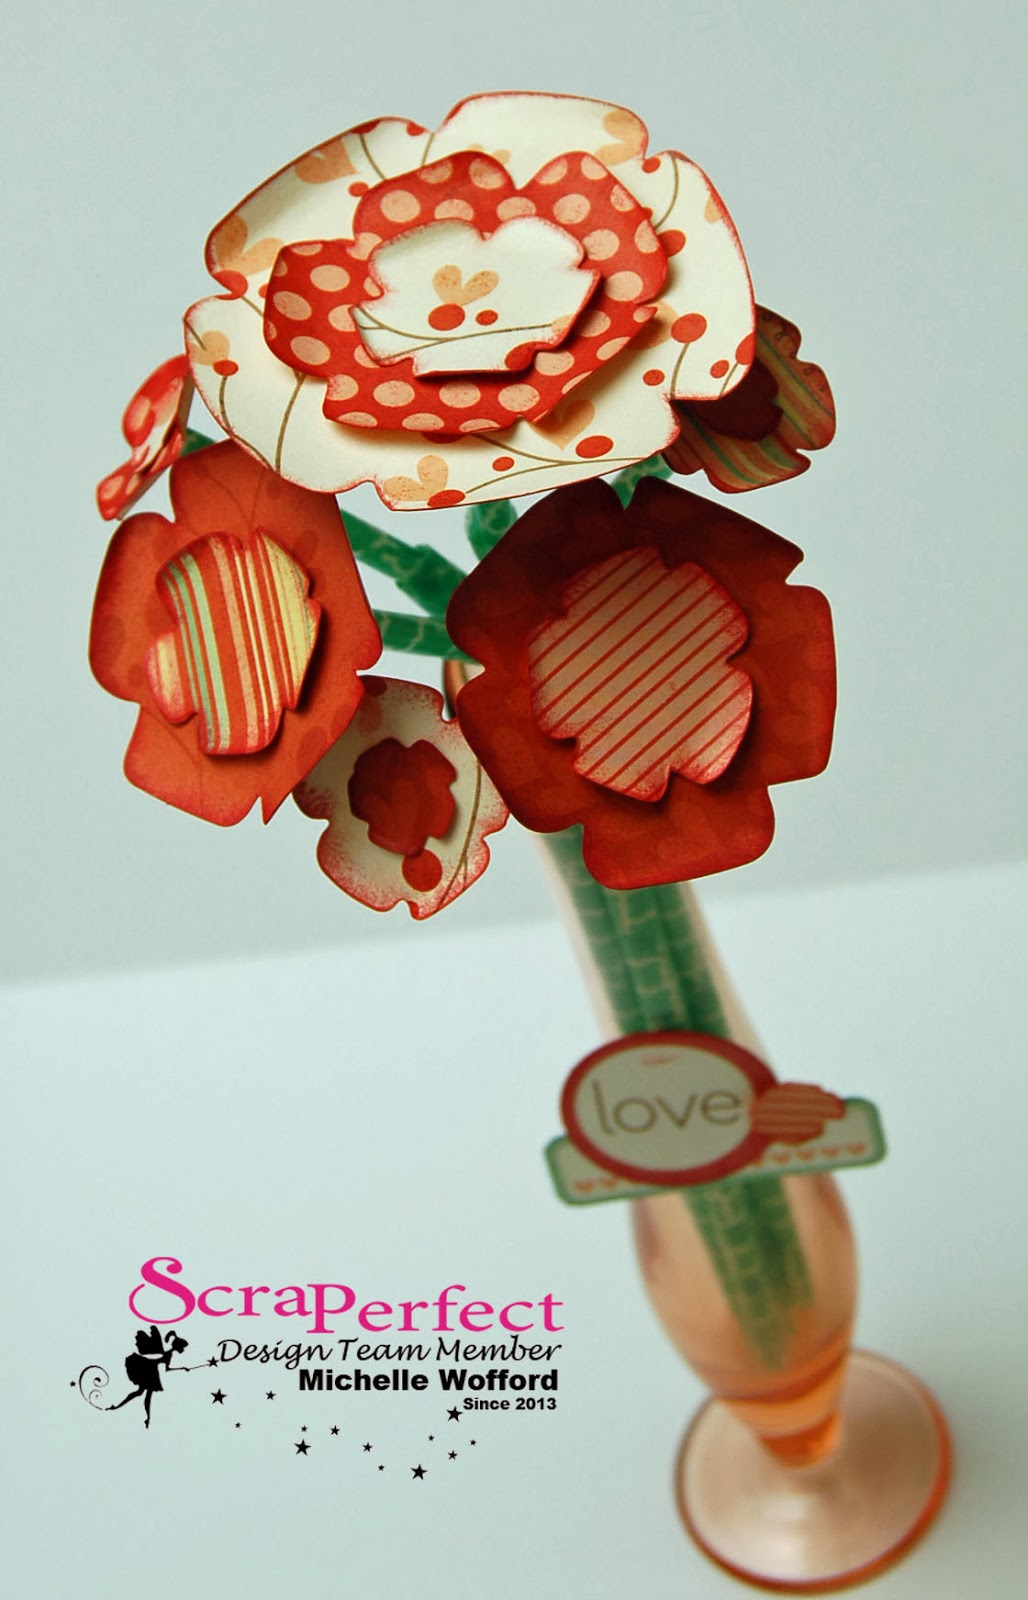 Scraperfect How To Make A Homemade Paper Flower Valentines Bouquet